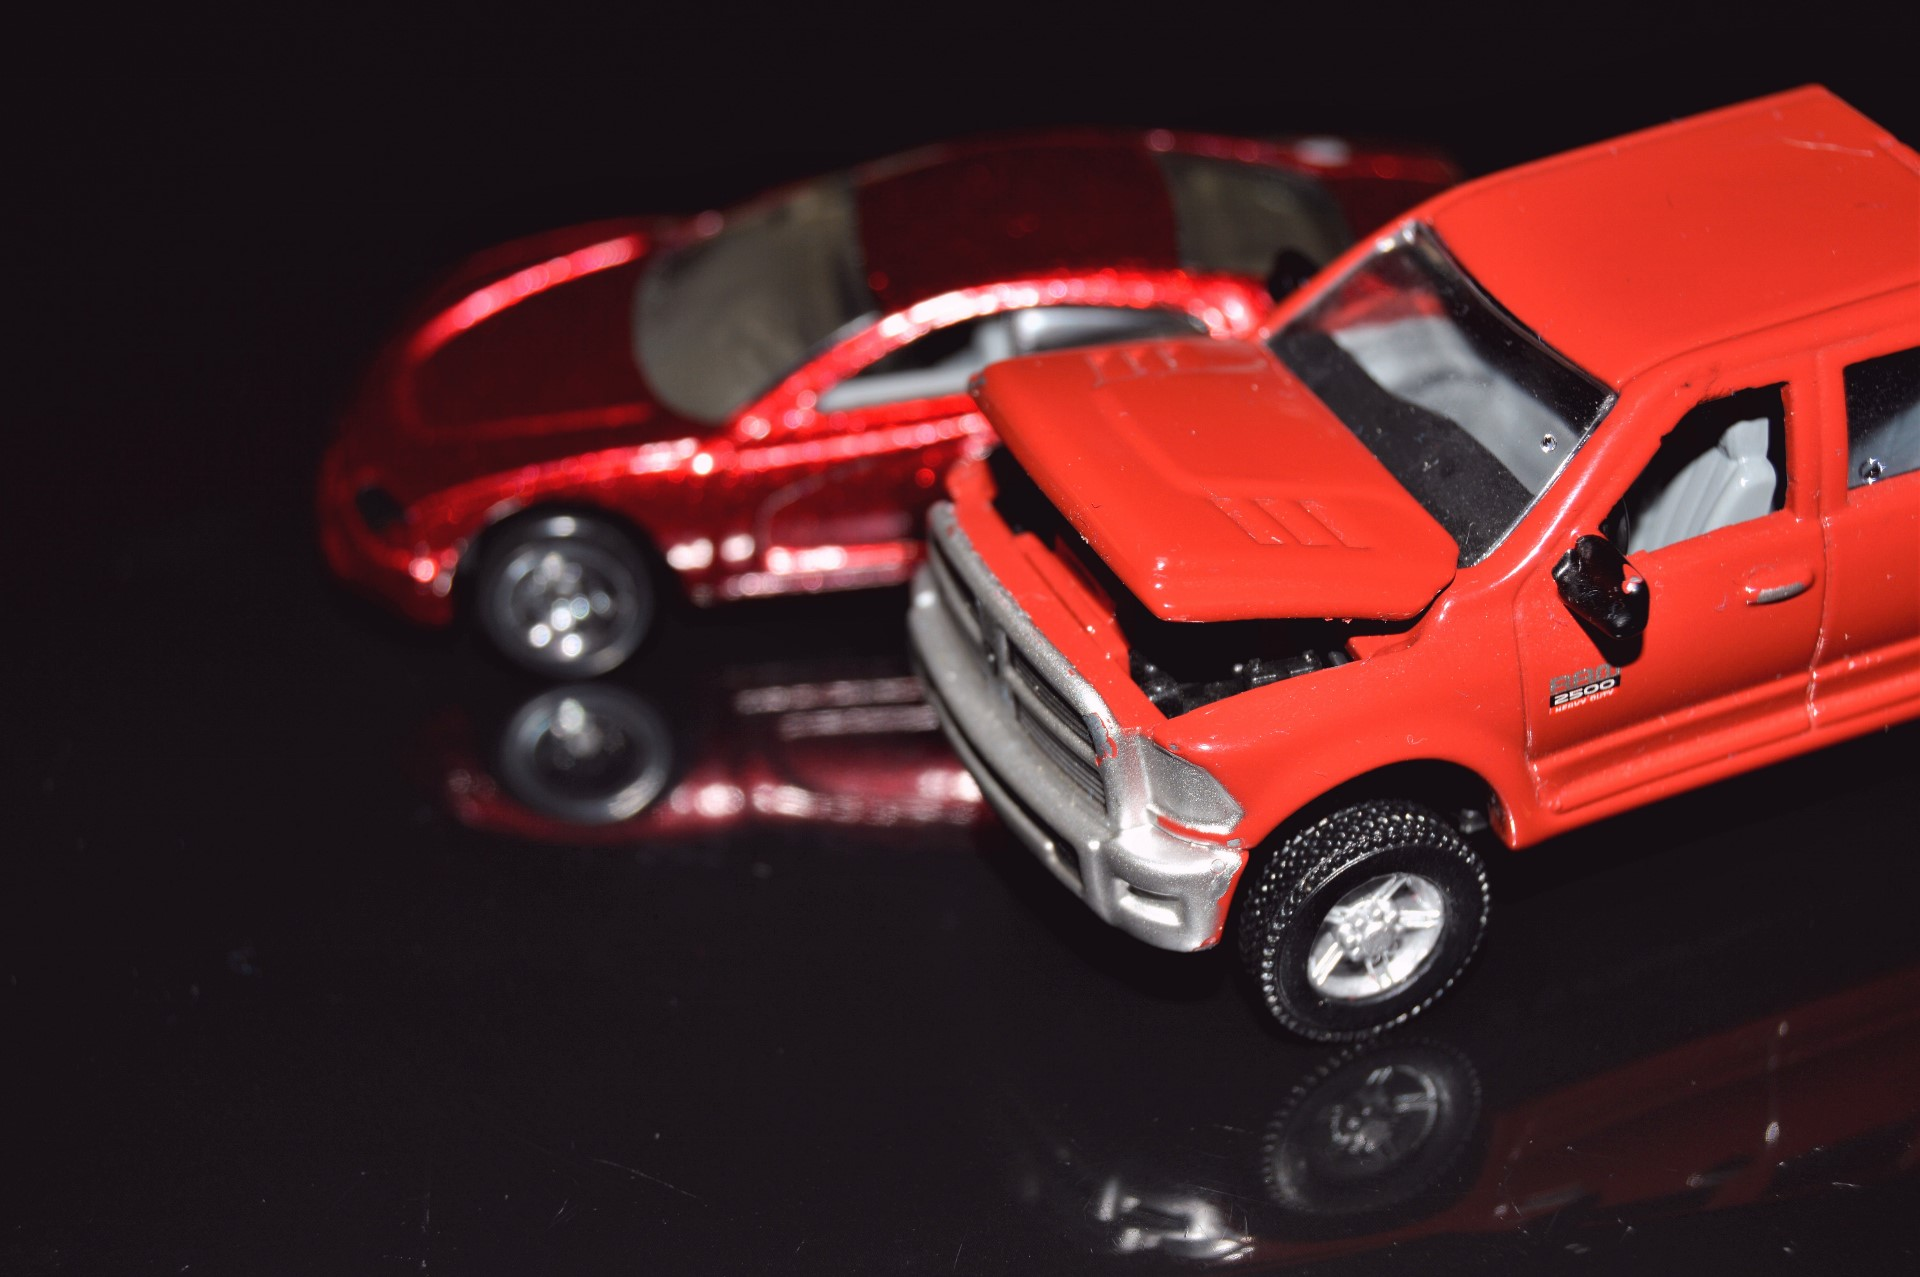 Dodge diecast model cars - Dodge Charger concept and a Dodge Ram 2500 gen 4, both of them using plastic wheels, although the pickup truck comes with rubber tires.